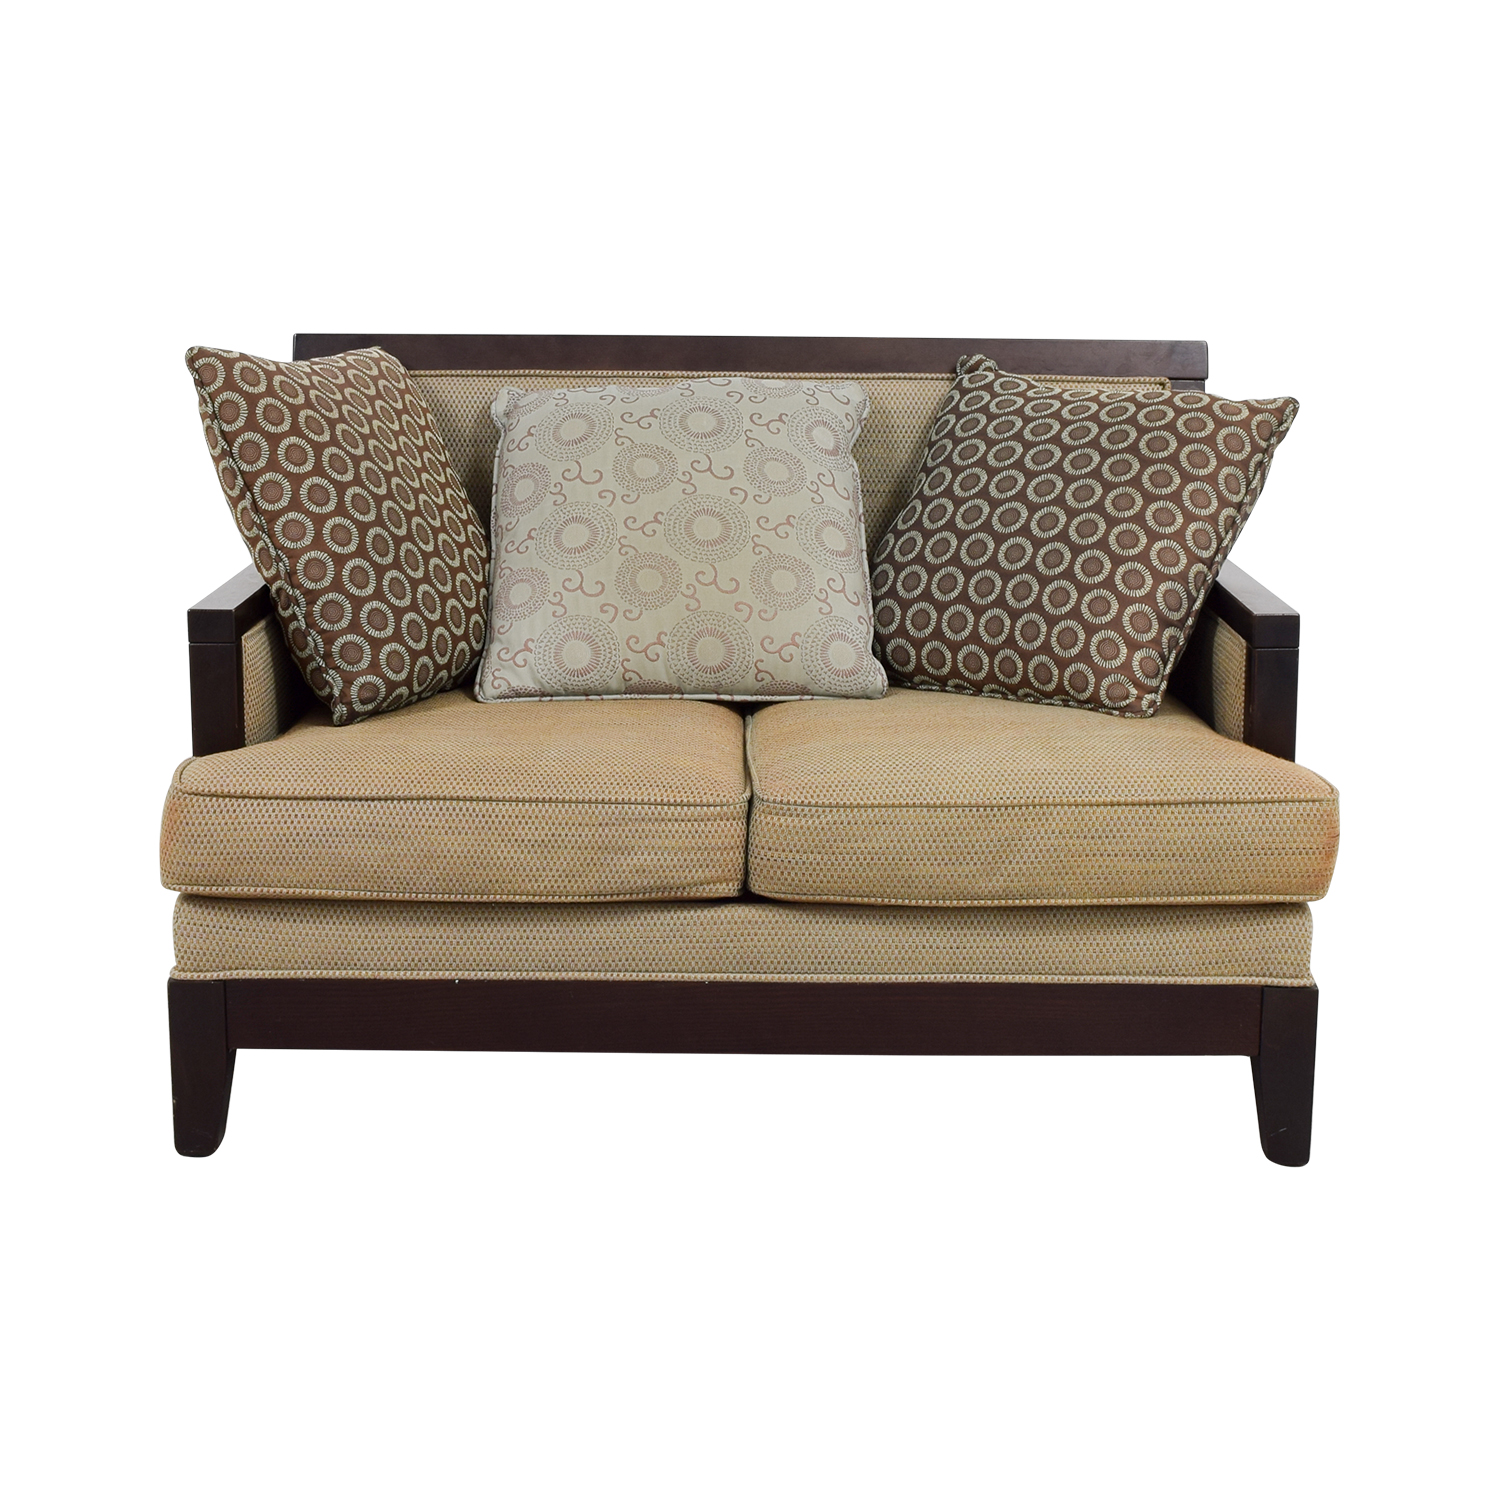 90% OFF - Tan with Wood Frame Love Seat / Sofas